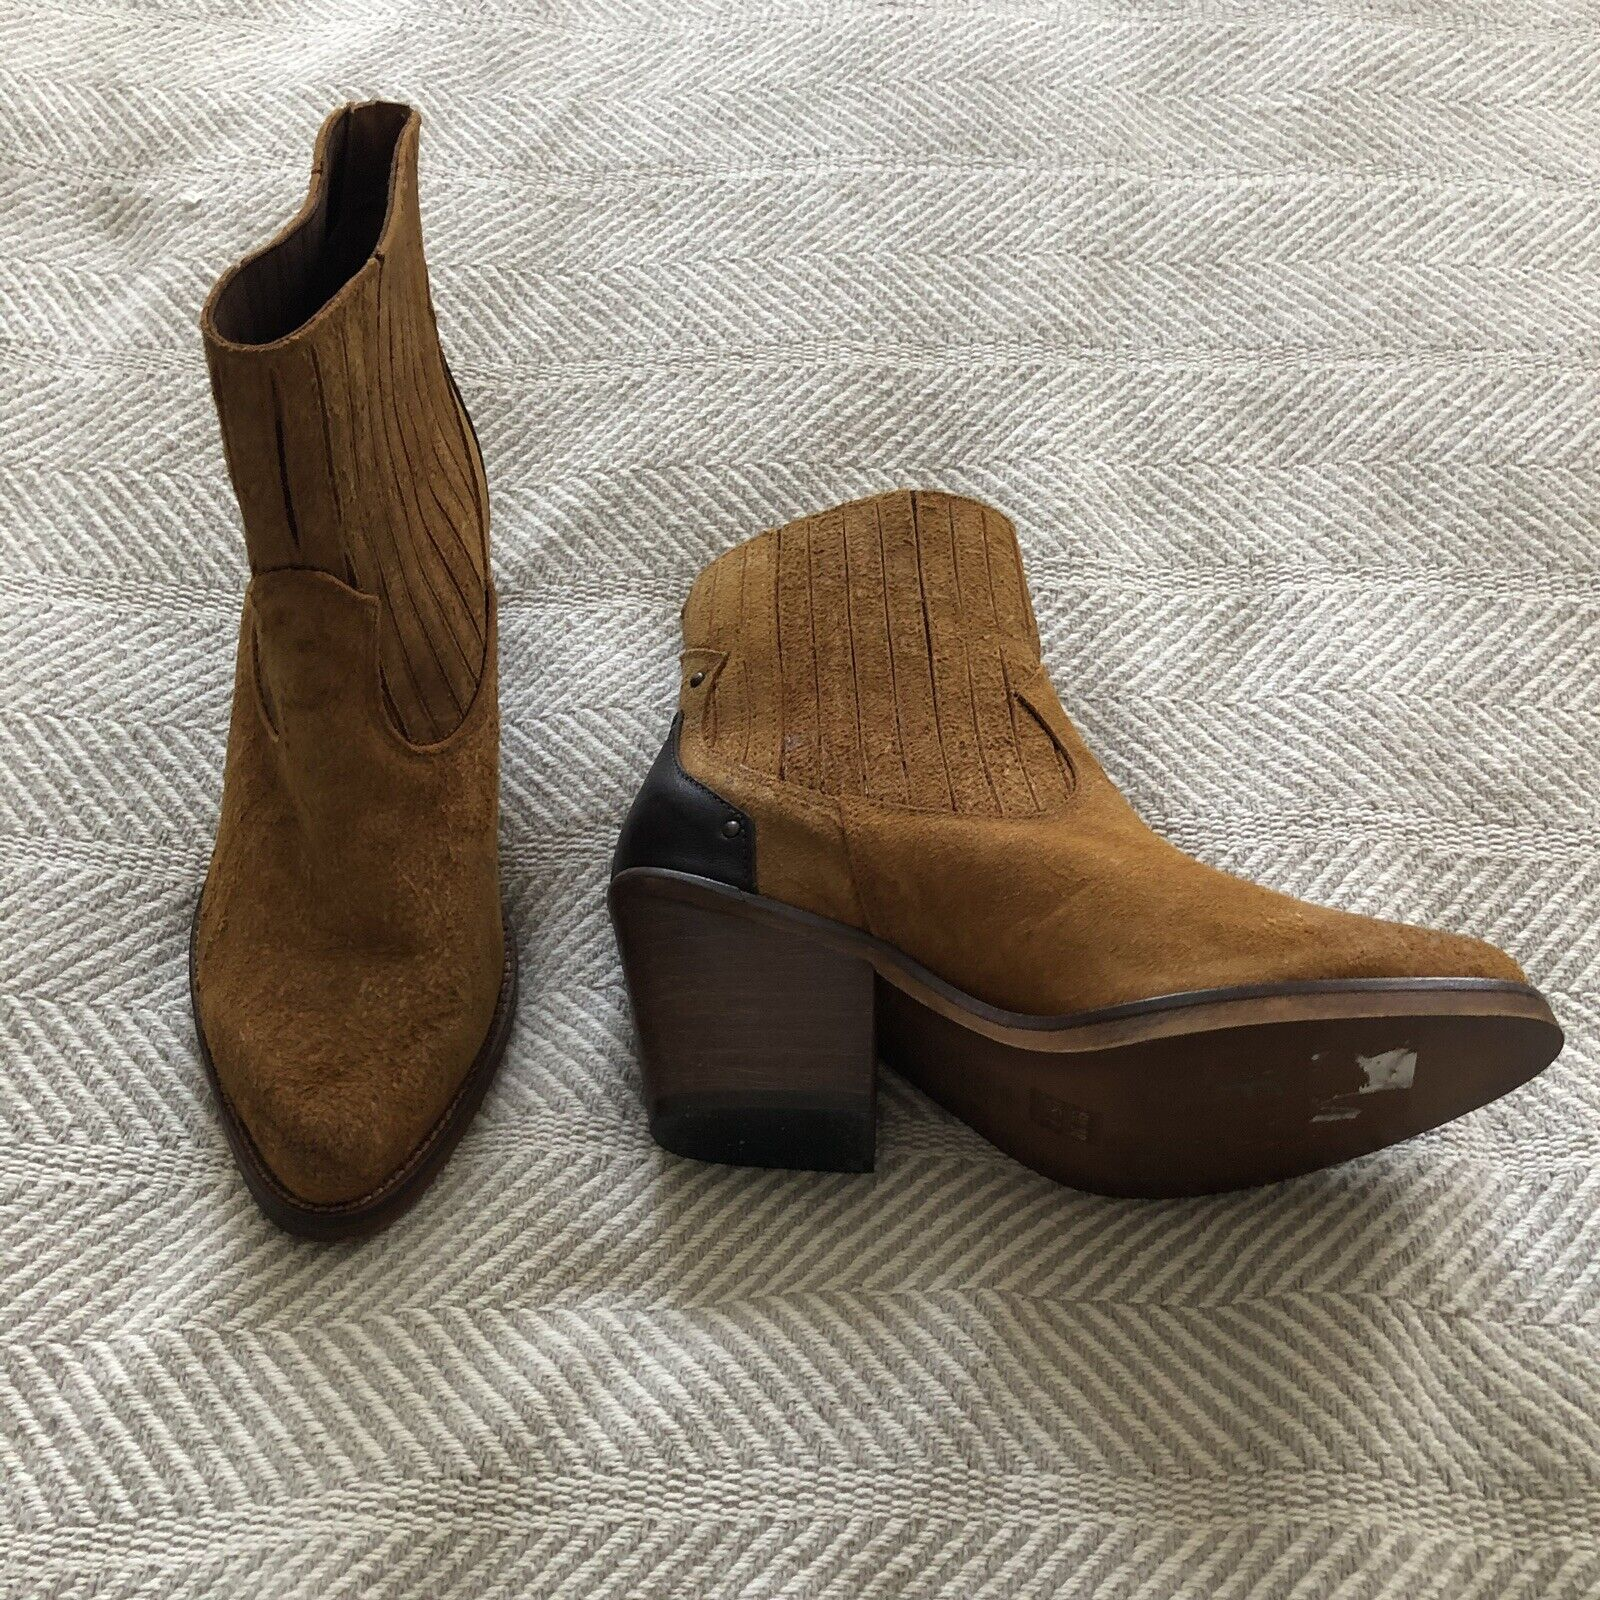 MUSSE & CLOUD JENCI BOOTIES Cue 38 Size 7 ANKLE BOOTS LEATHER NWOB